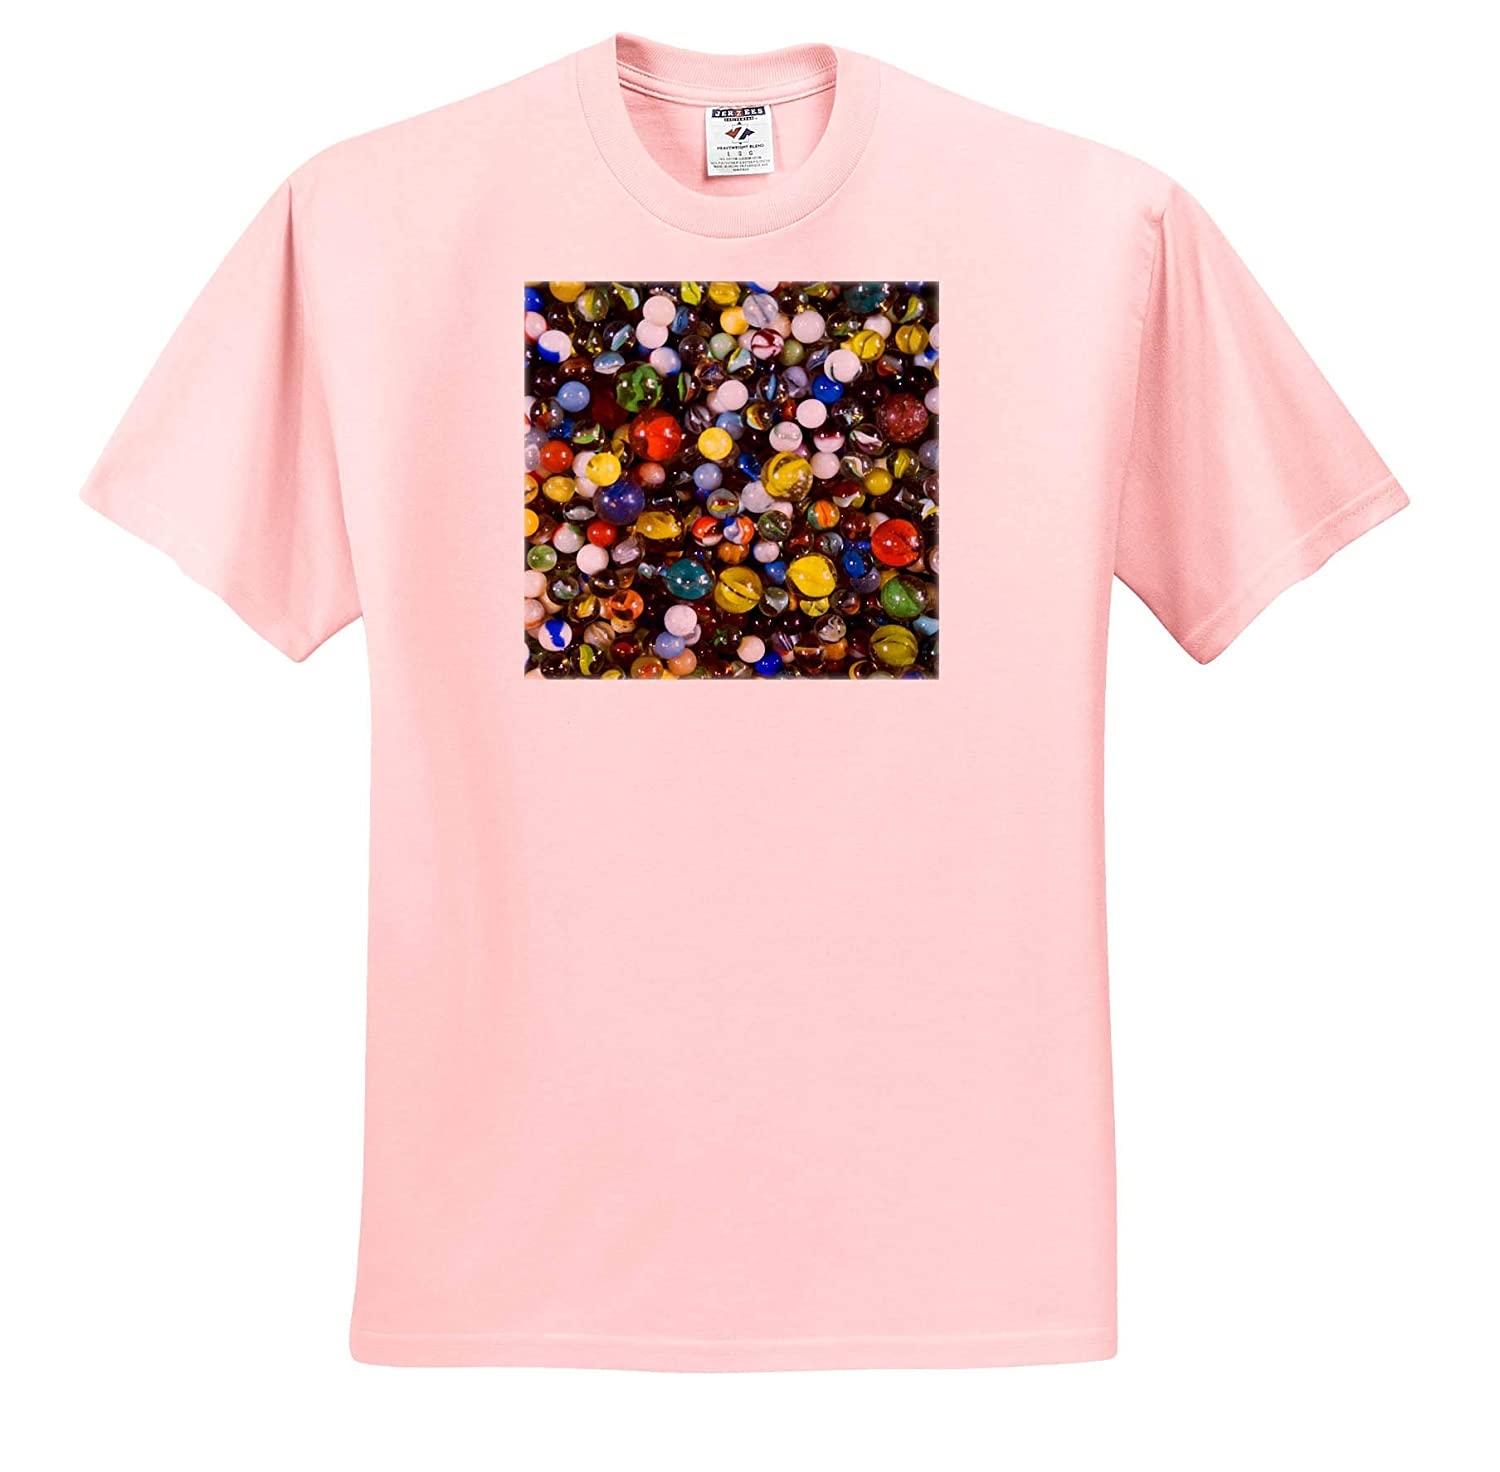 - Adult T-Shirt XL ts/_314955 Abstracts 3dRose Danita Delimont Pile of Glass Marbles